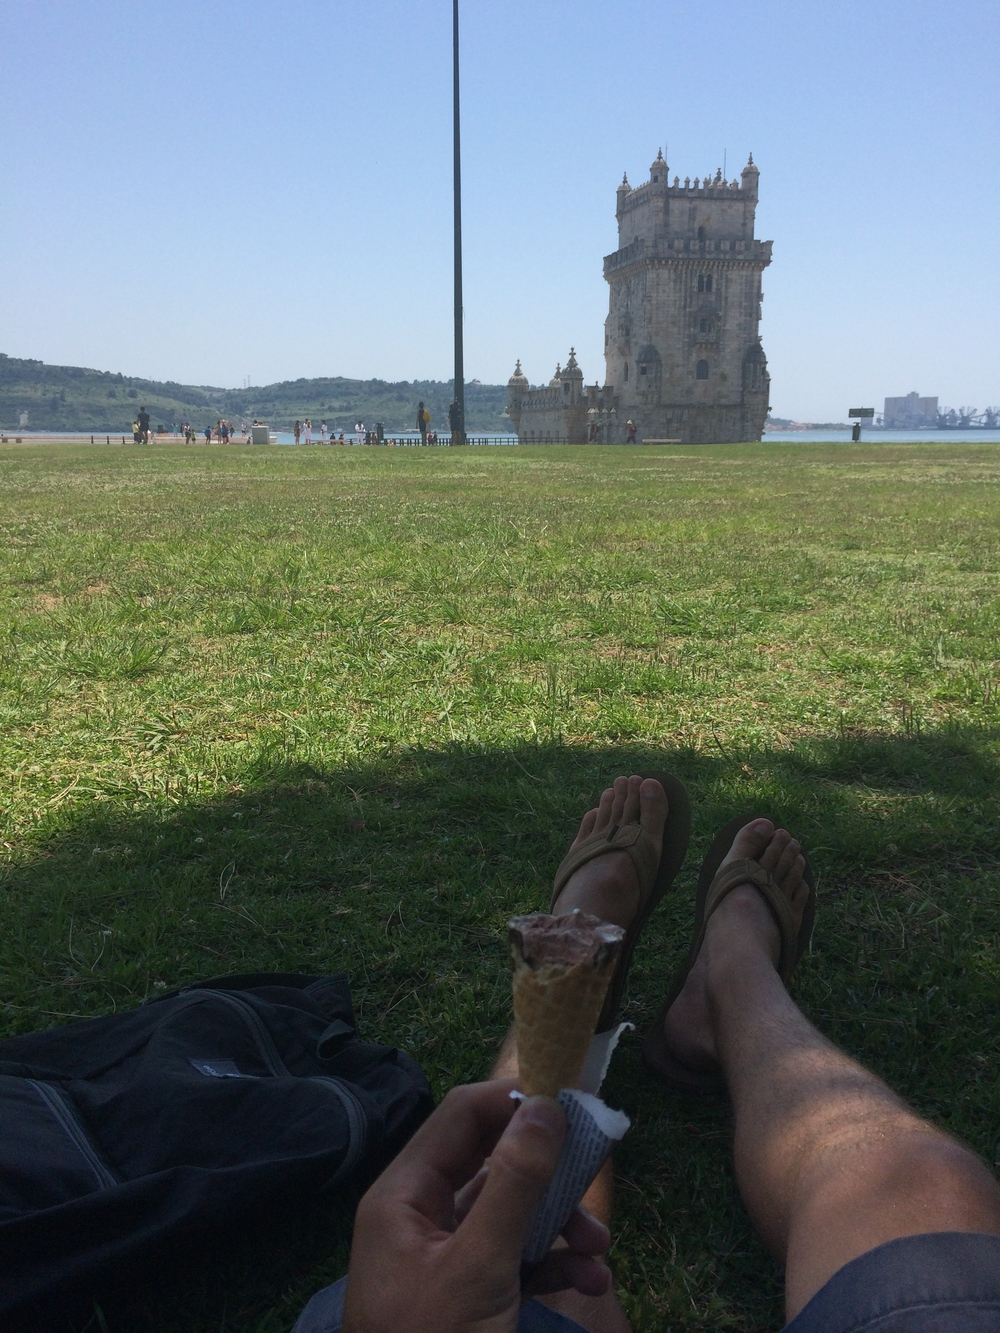 Ice cream break in front of the Torre de Belém.